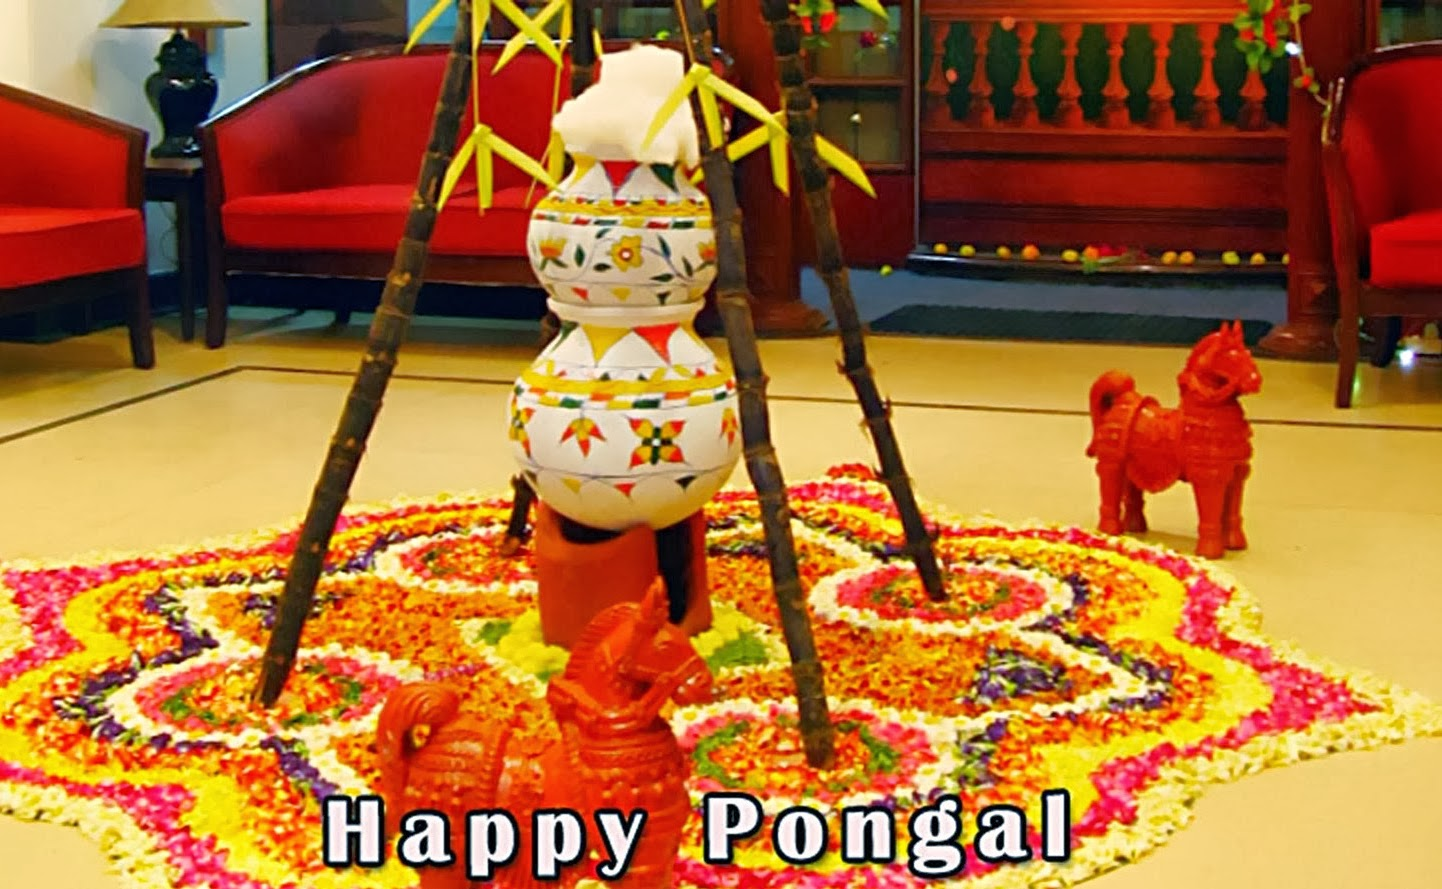 Thai Pongal Greeting Cards Image Collections Greetings Formal Letter